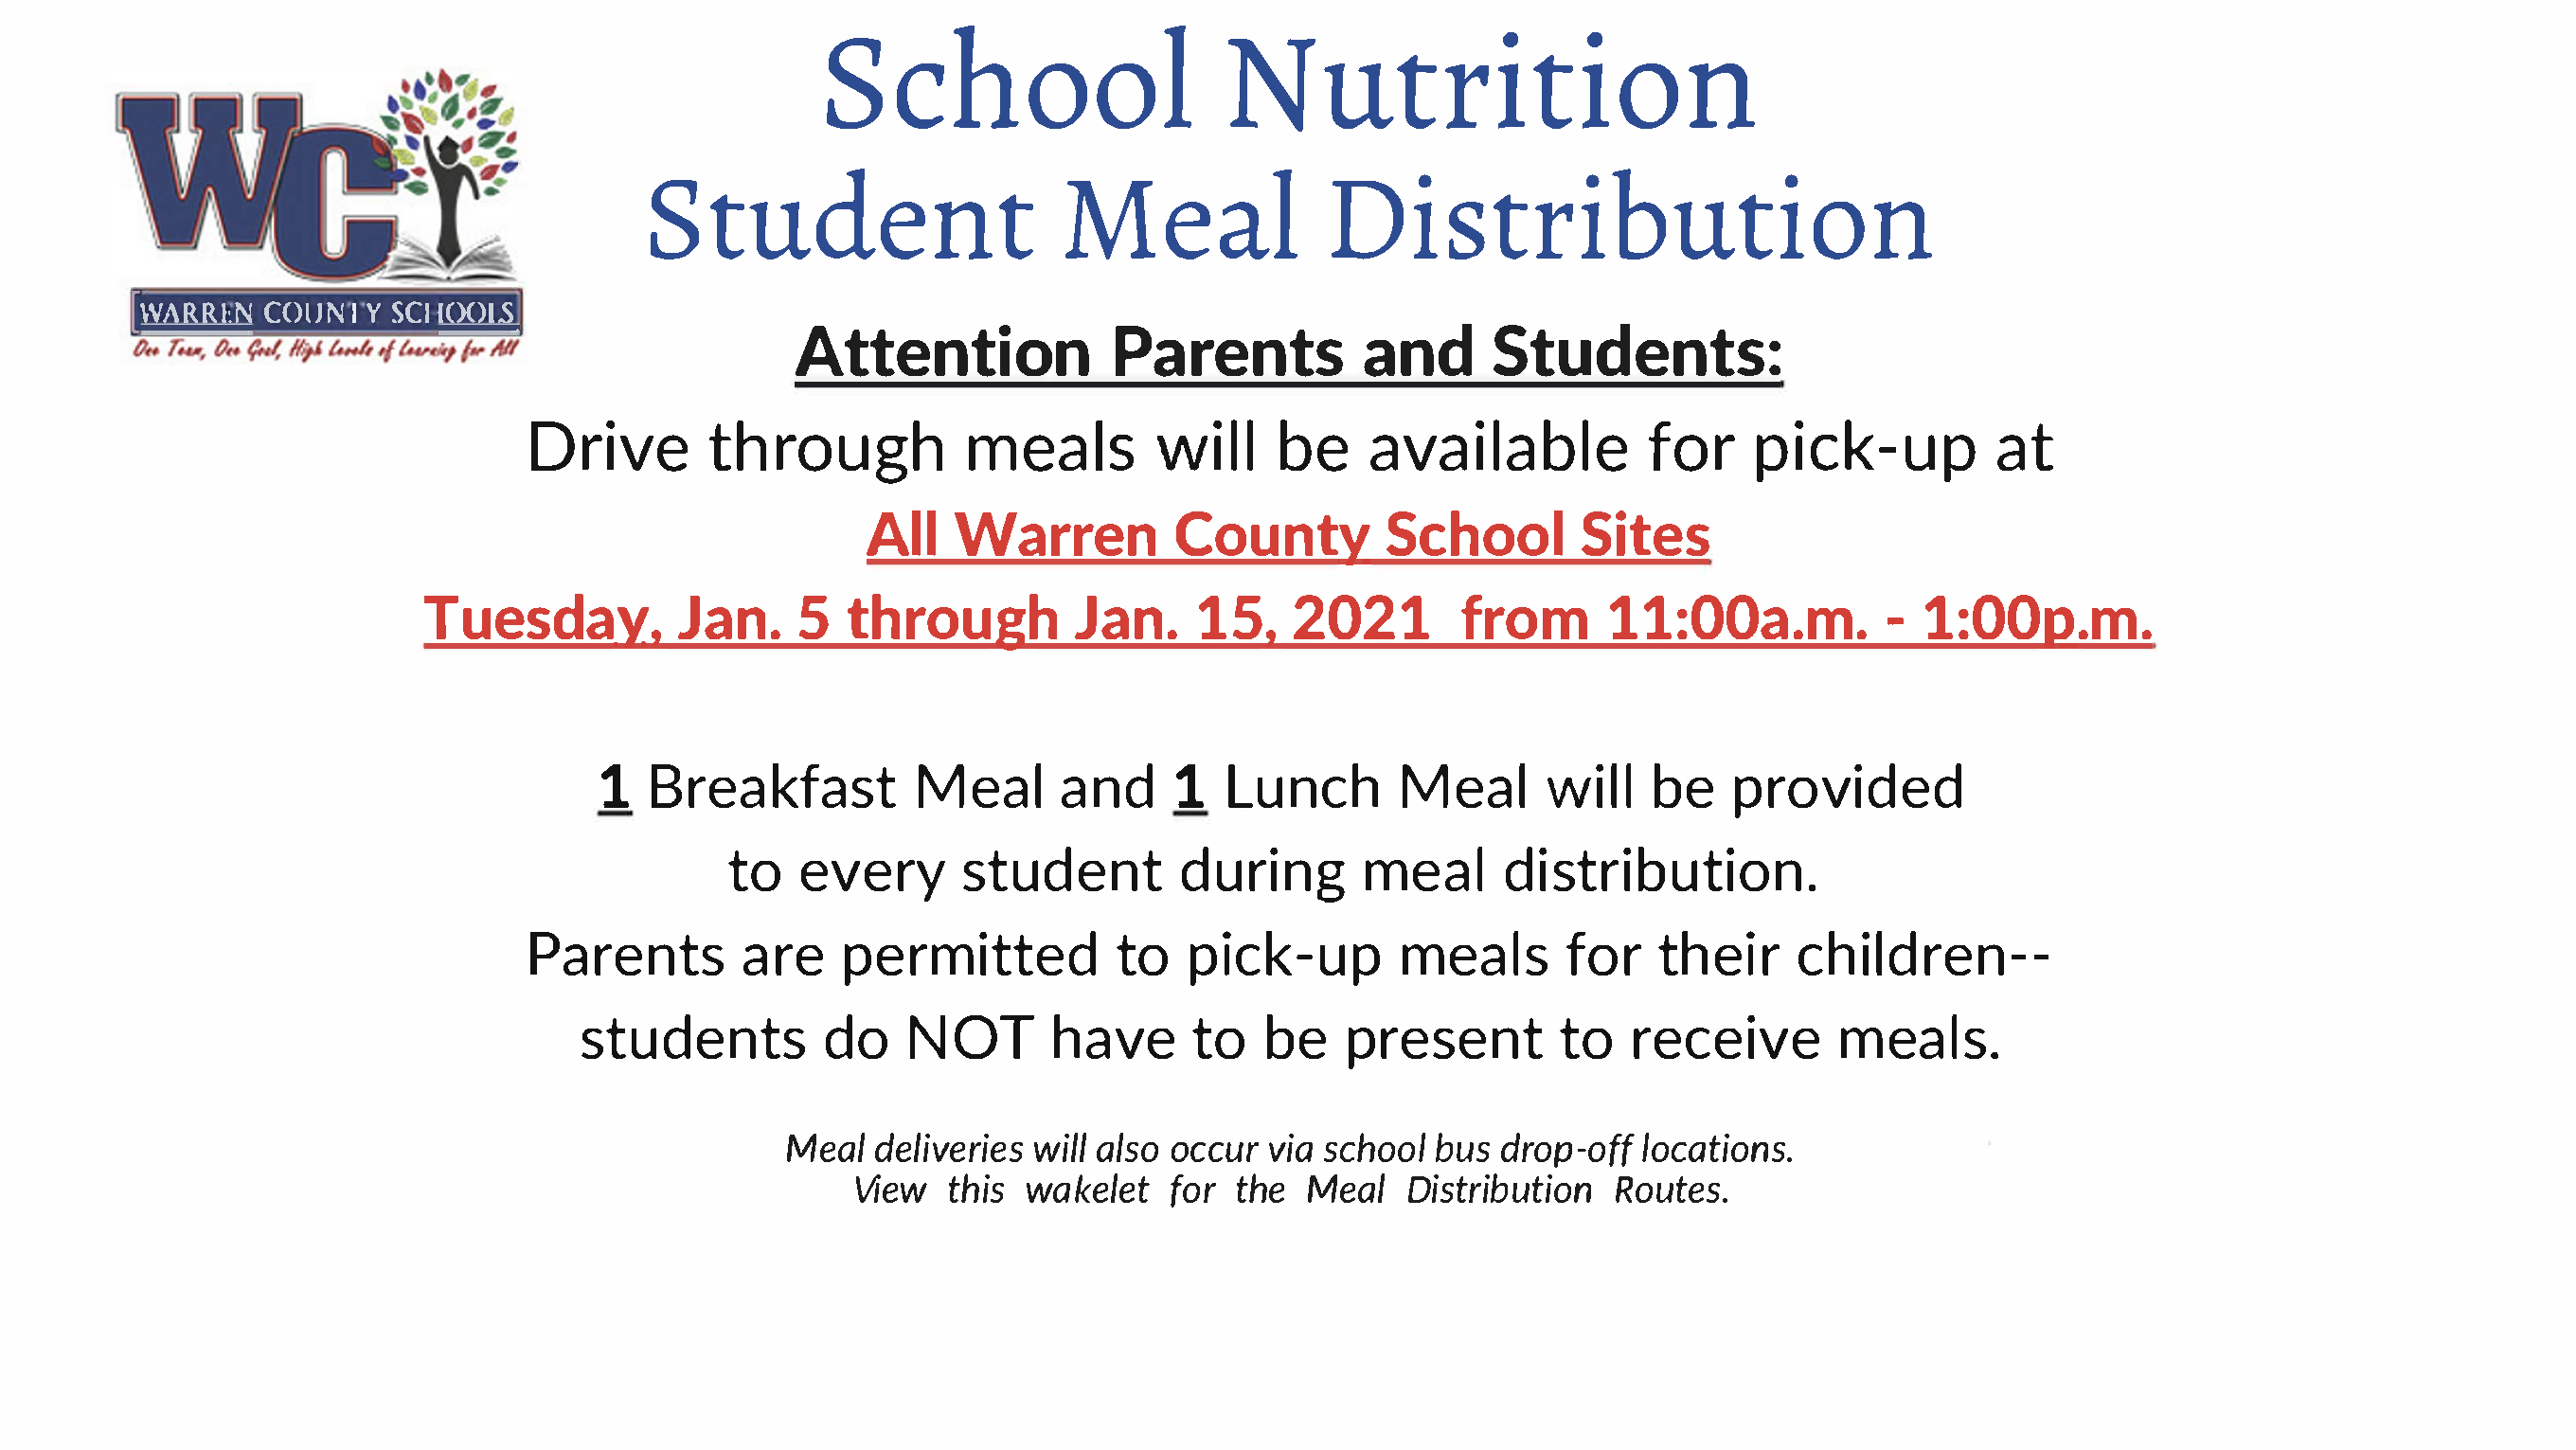 School Nutrition Meal Distribution